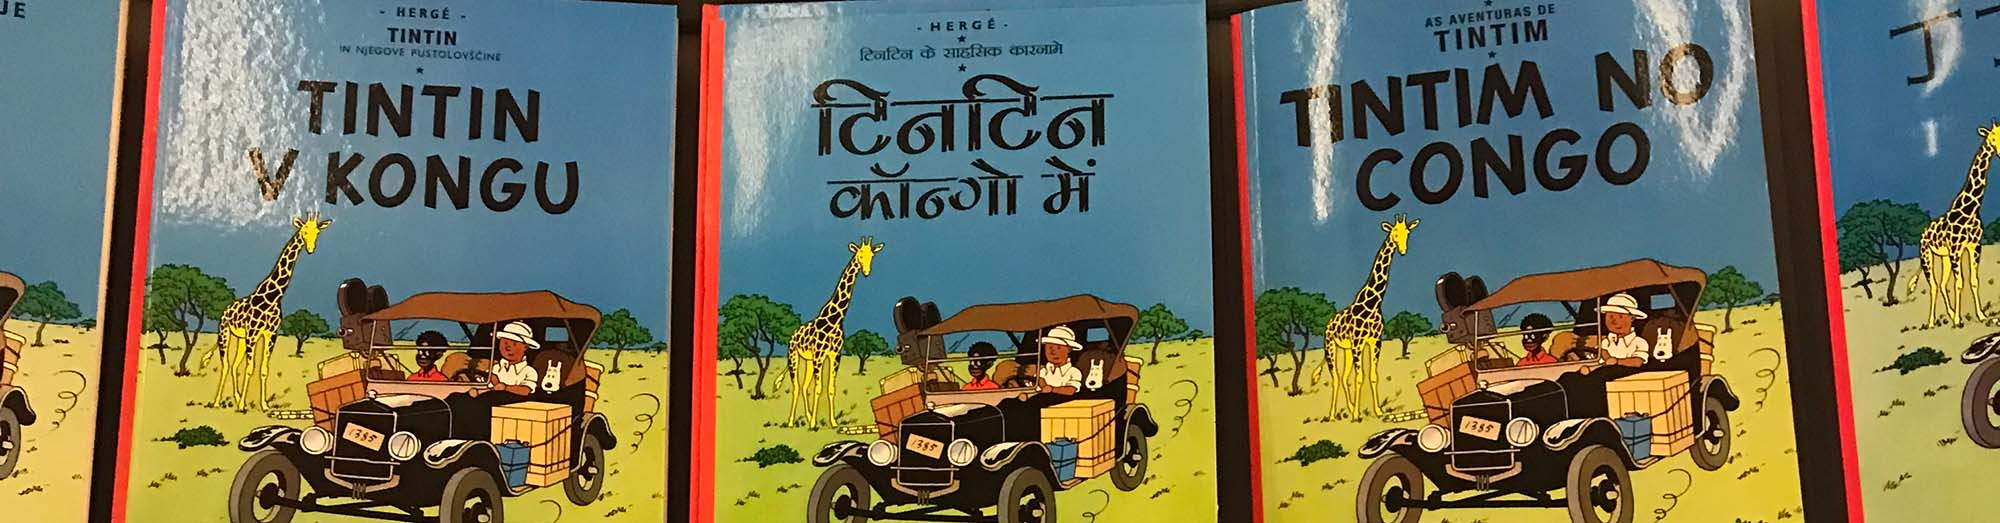 The Adventures of Tintin in Bengali and Hindi have found their way into the Hergé Museum